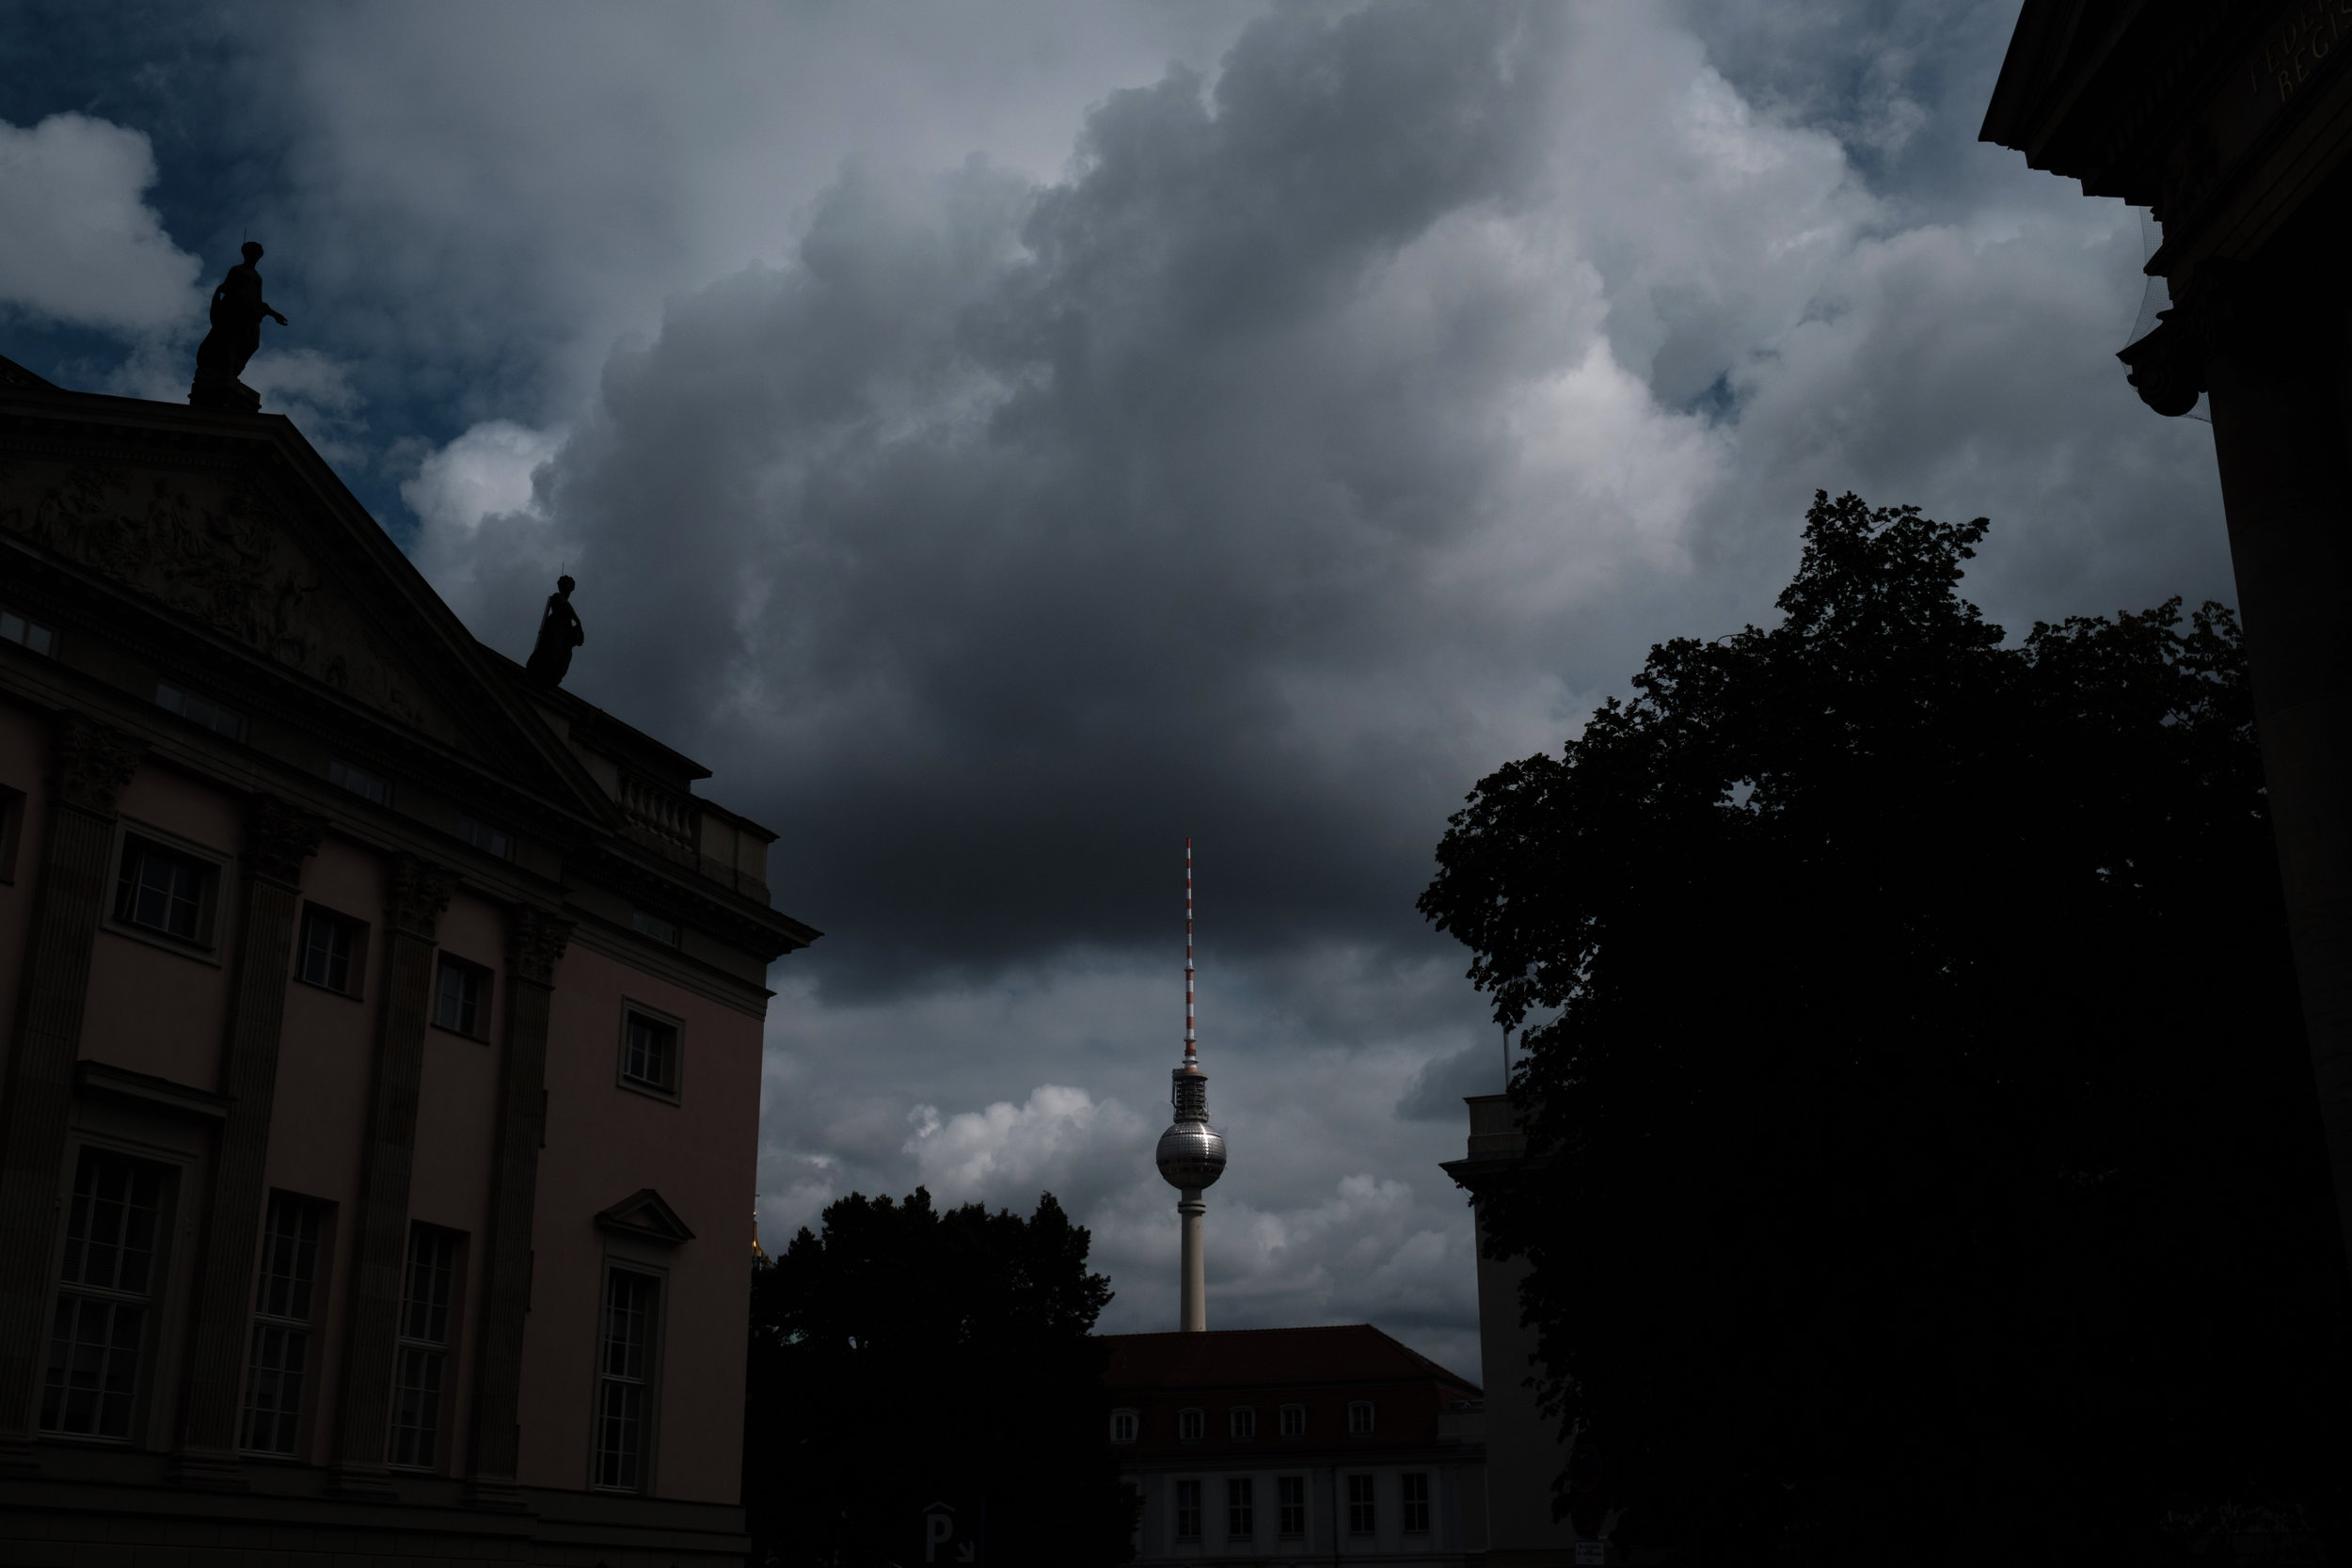 The iconic TV tower in Berlin on a gloomy August day